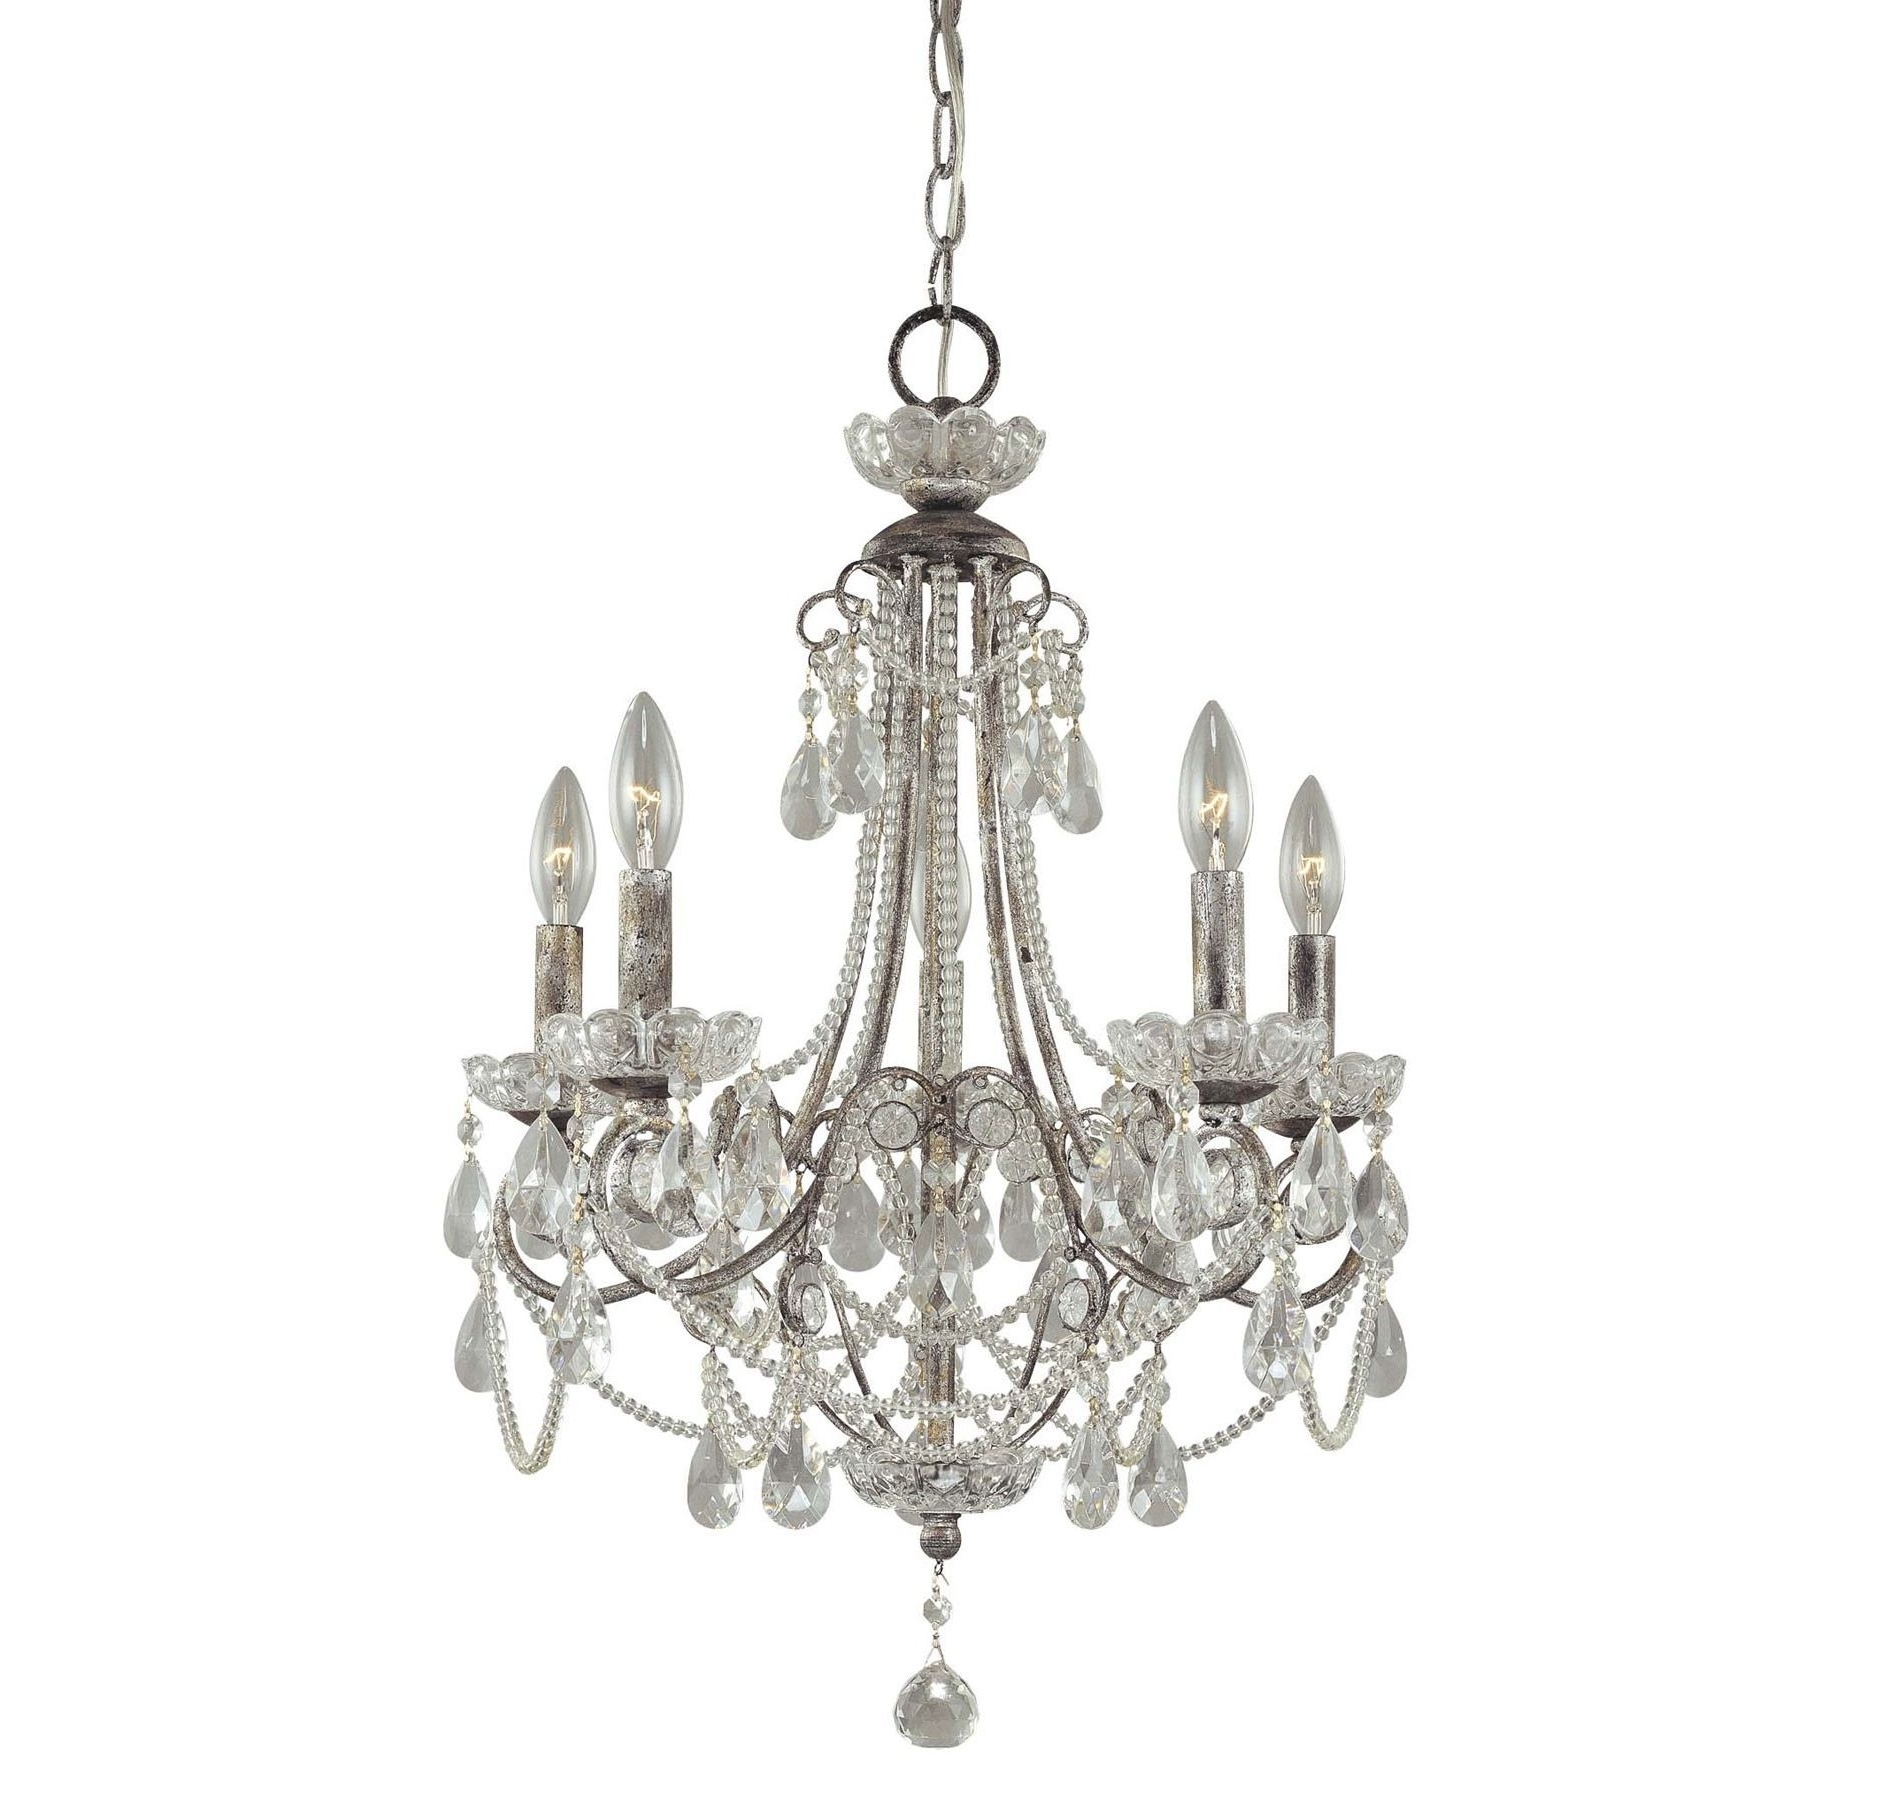 Preferred Mini Crystal Chandeliers Regarding Innovative Small Bathroom Chandelier Crystal Chandelier Lighting (View 19 of 20)